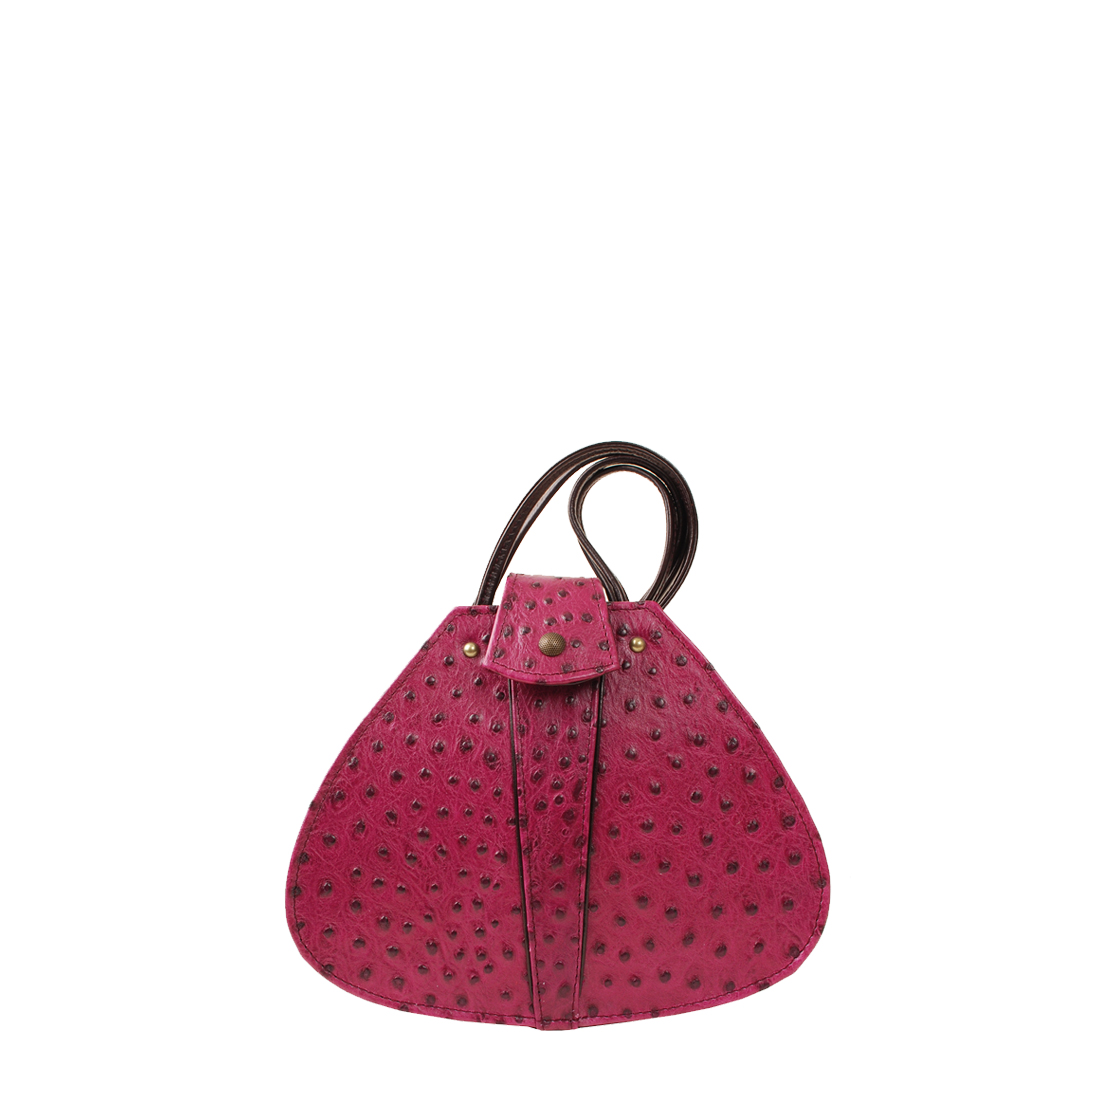 Vintage Magenta Leather Shoudler Bag